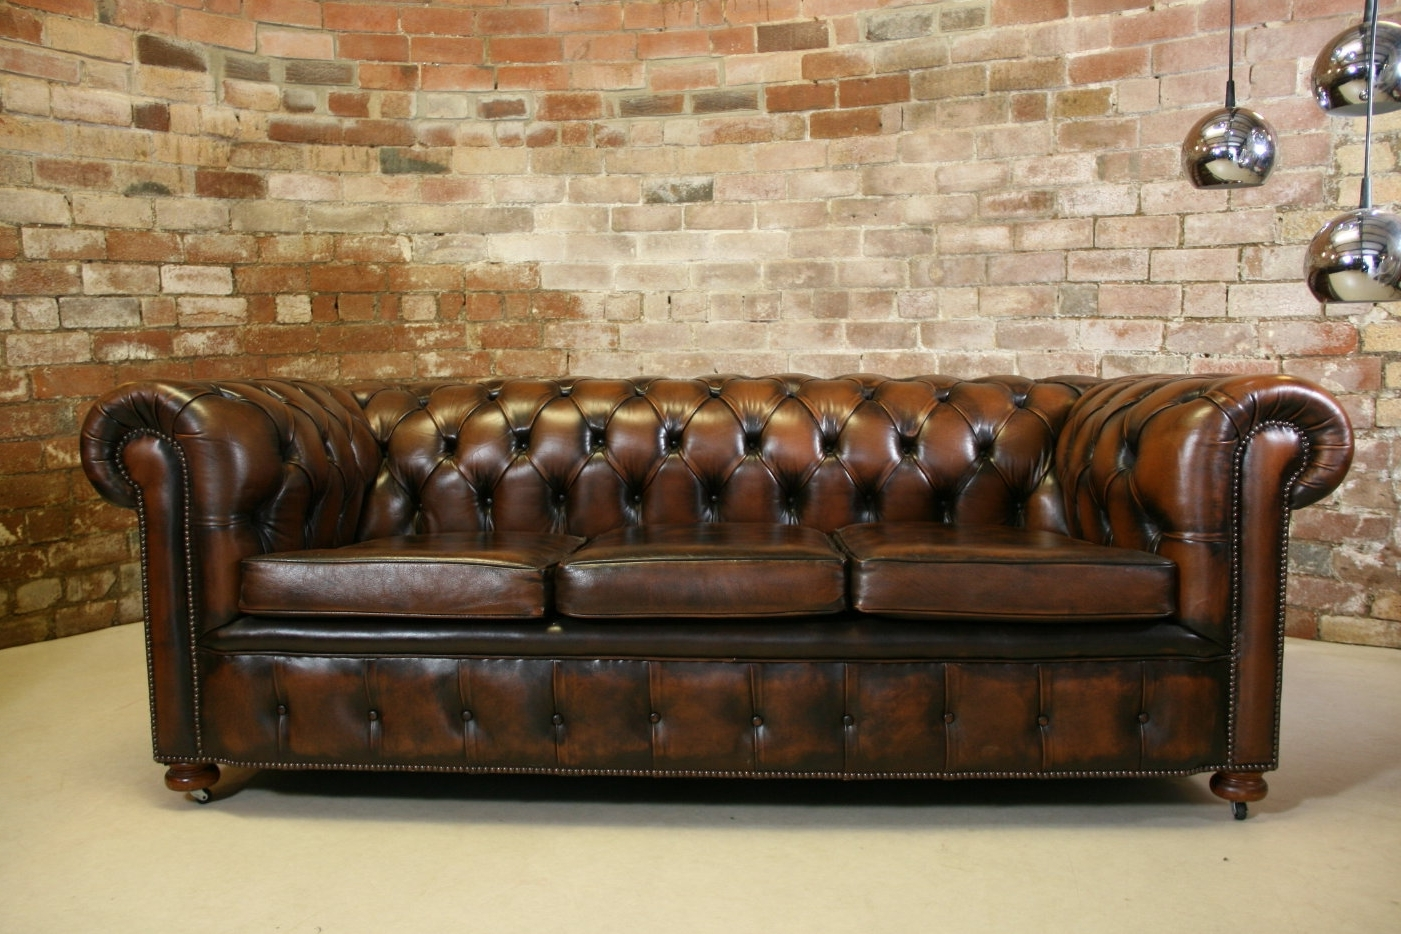 Vintage Chesterfield Sofas With Well Known Leather Chesterfield Sofa — Fabrizio Design : Clean And Bright (View 2 of 20)